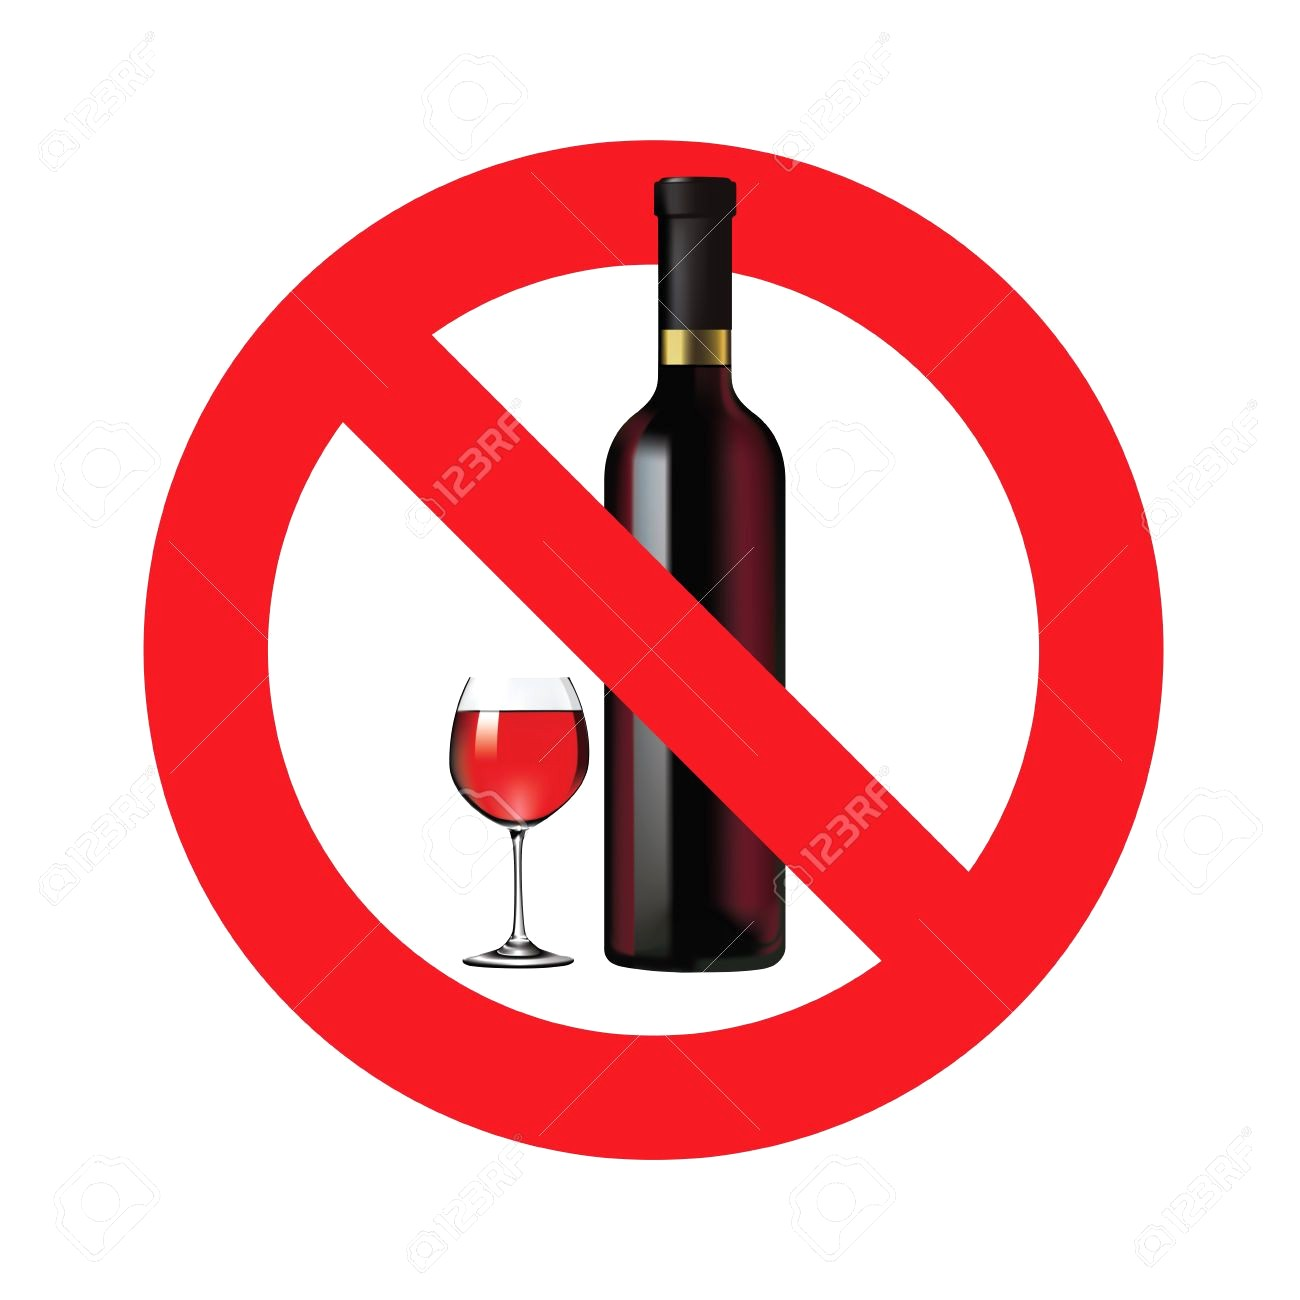 No alcohol clipart 4 » Clipart Station.